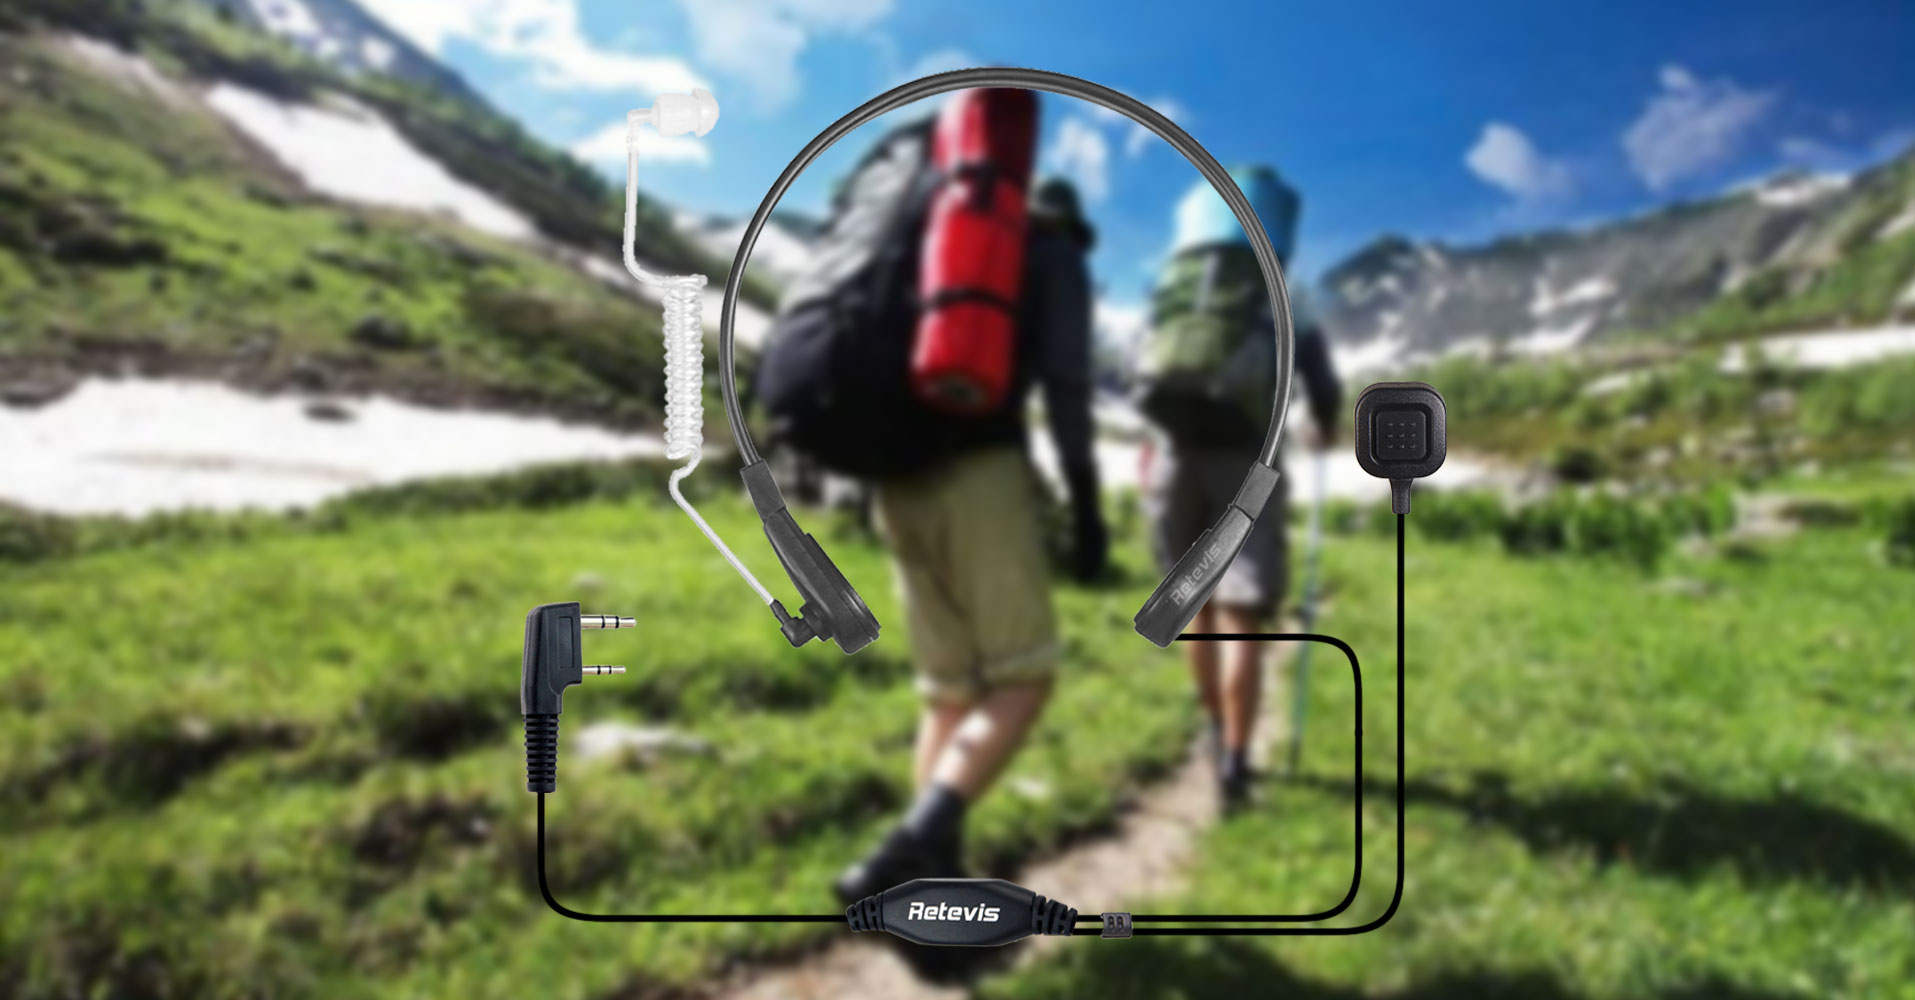 Throat Microphone for hiking or hunting